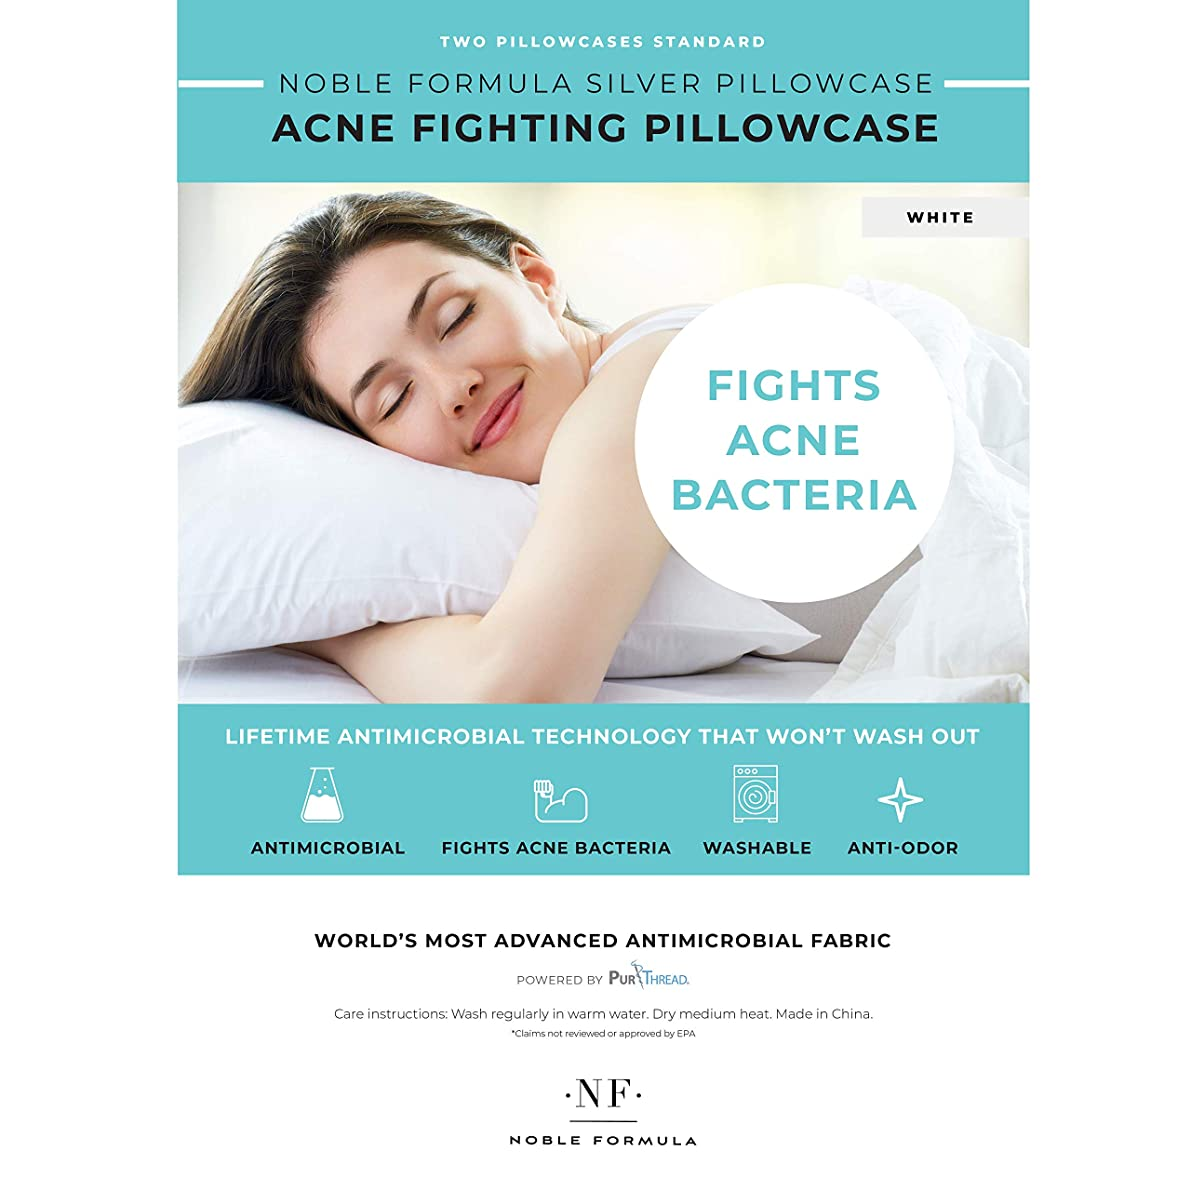 Noble Kleen Silver Acne Fighting Antimicrobial Pillowcase with PurThread Silver Technology, White, 2 Standard Pillowcases